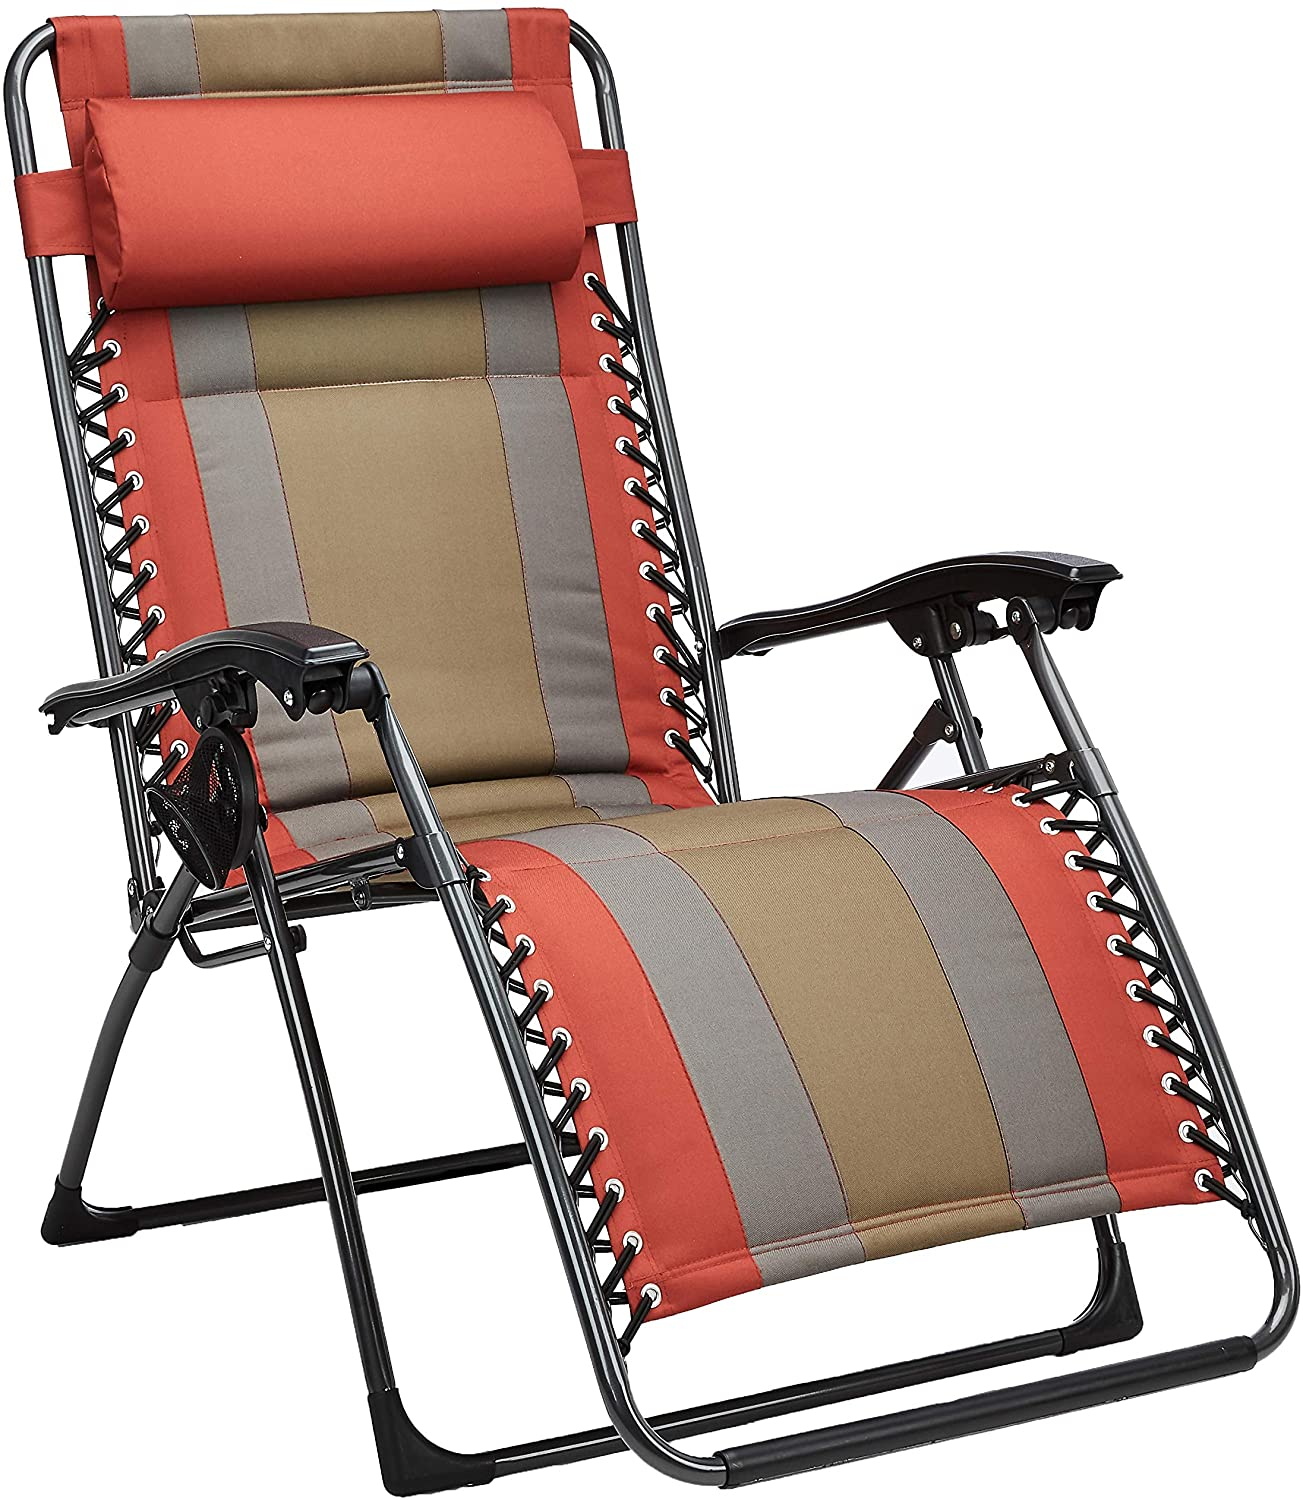 AmazonBasics Padded Zero Gravity Beach Chair